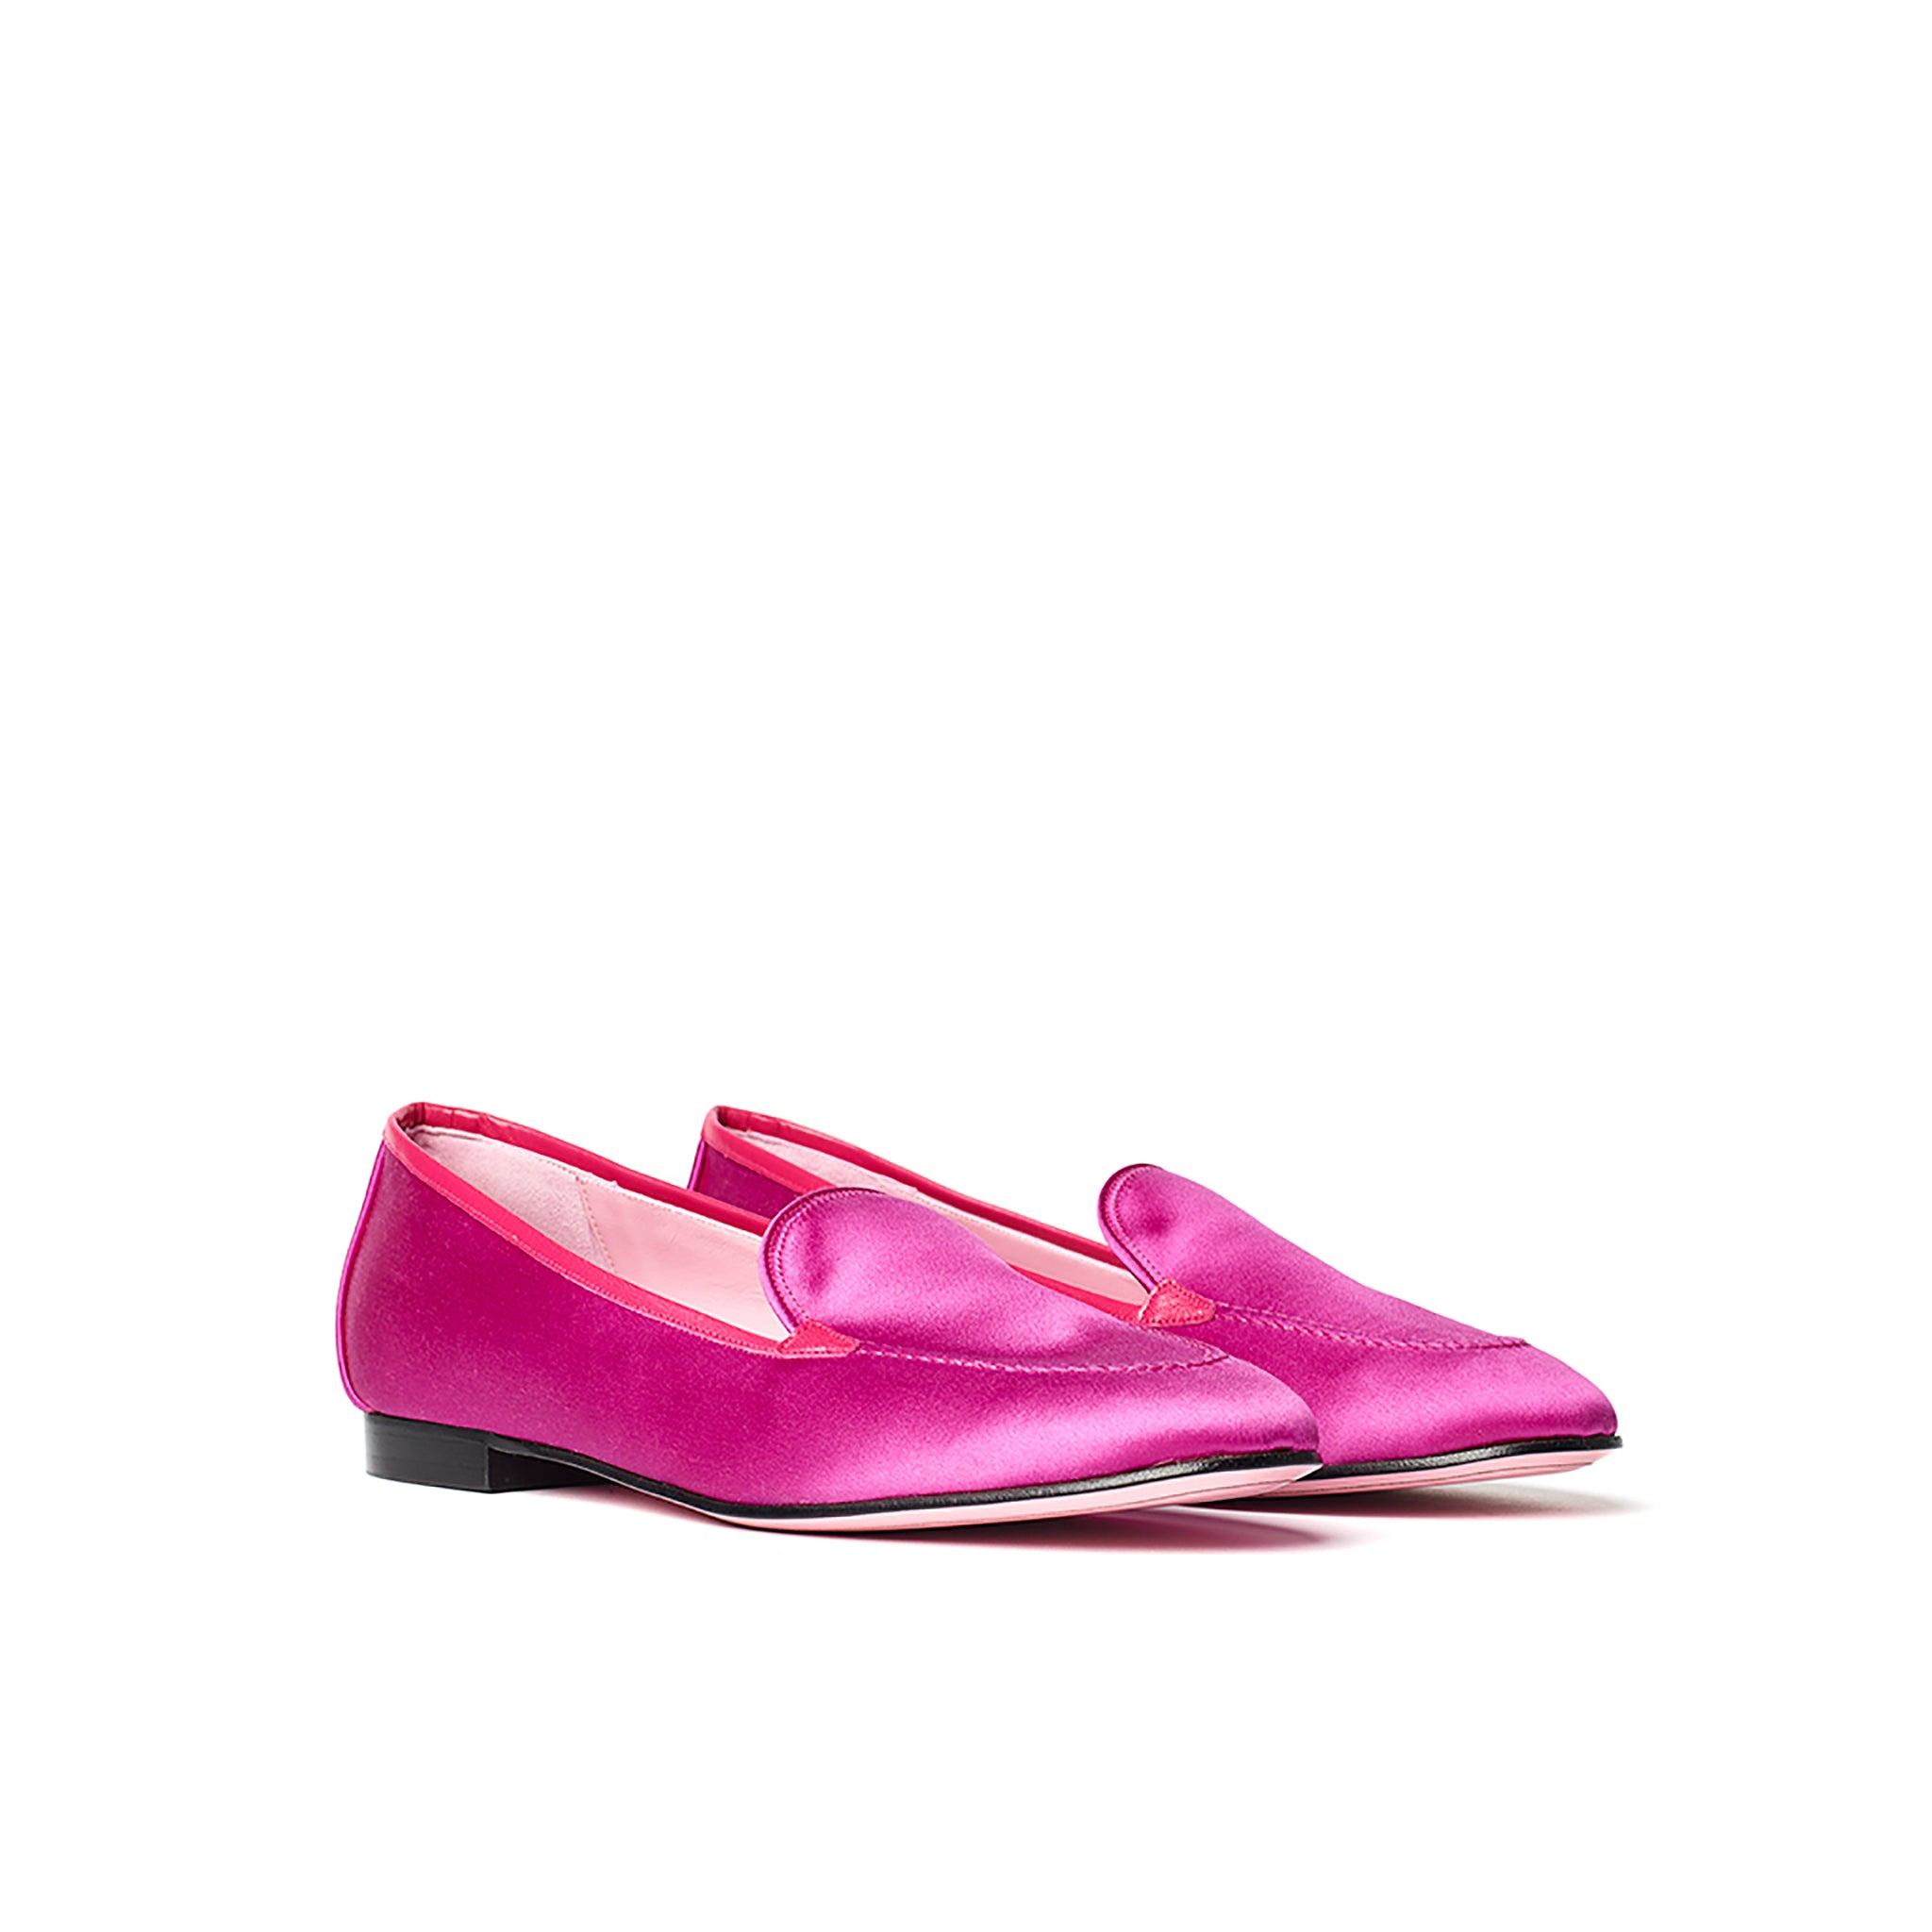 Phare classic loafer in magenta silk satin 3/4 view